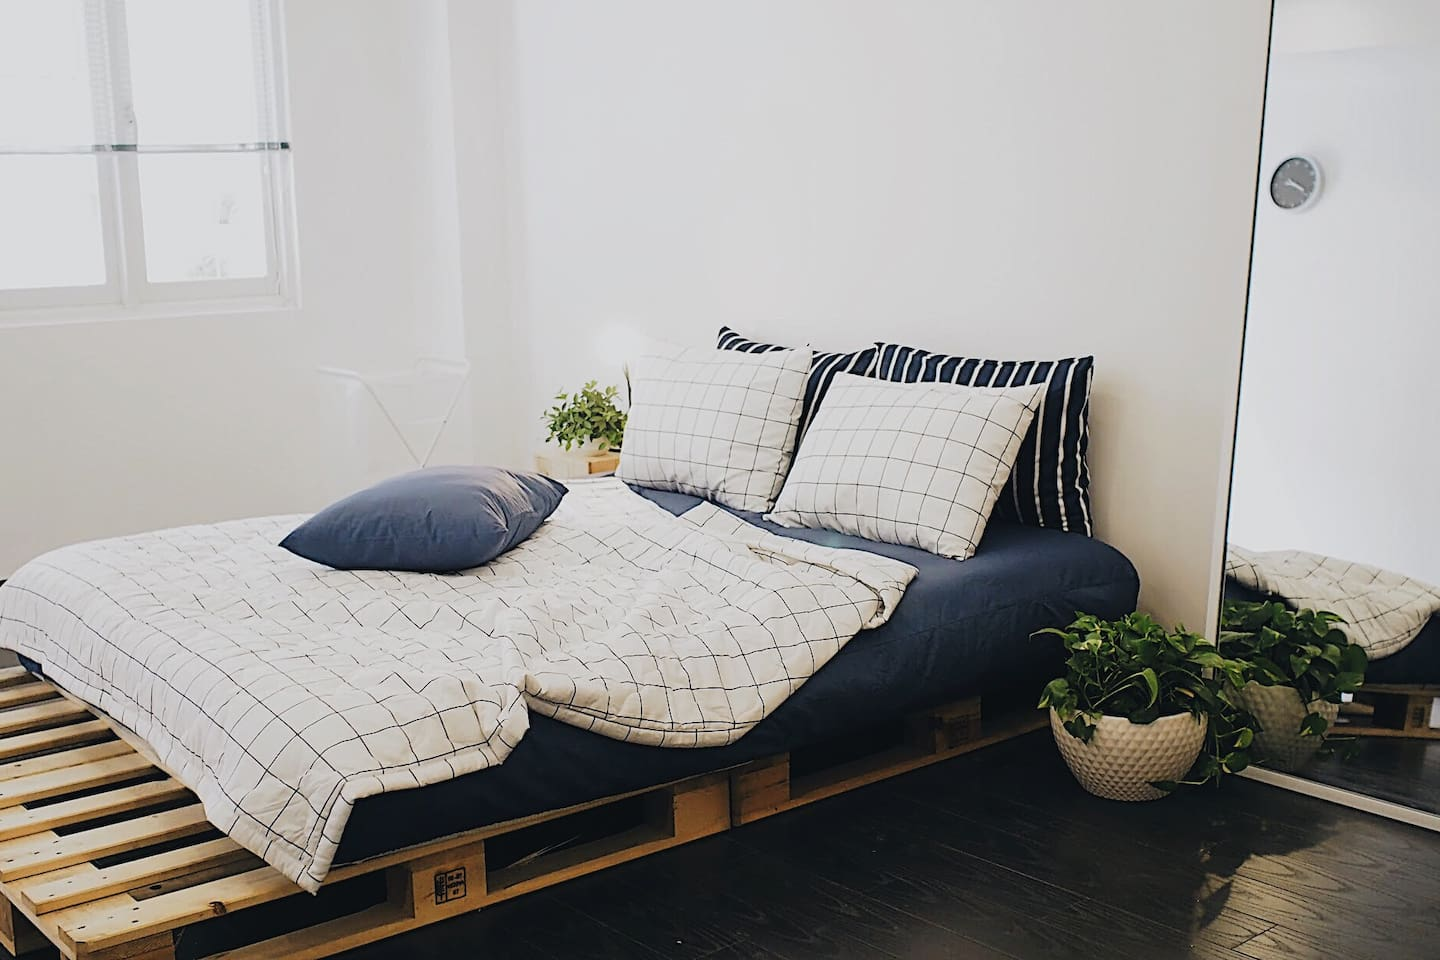 Super comfy bed and pillow sets. Quality Sleep guaranteed.